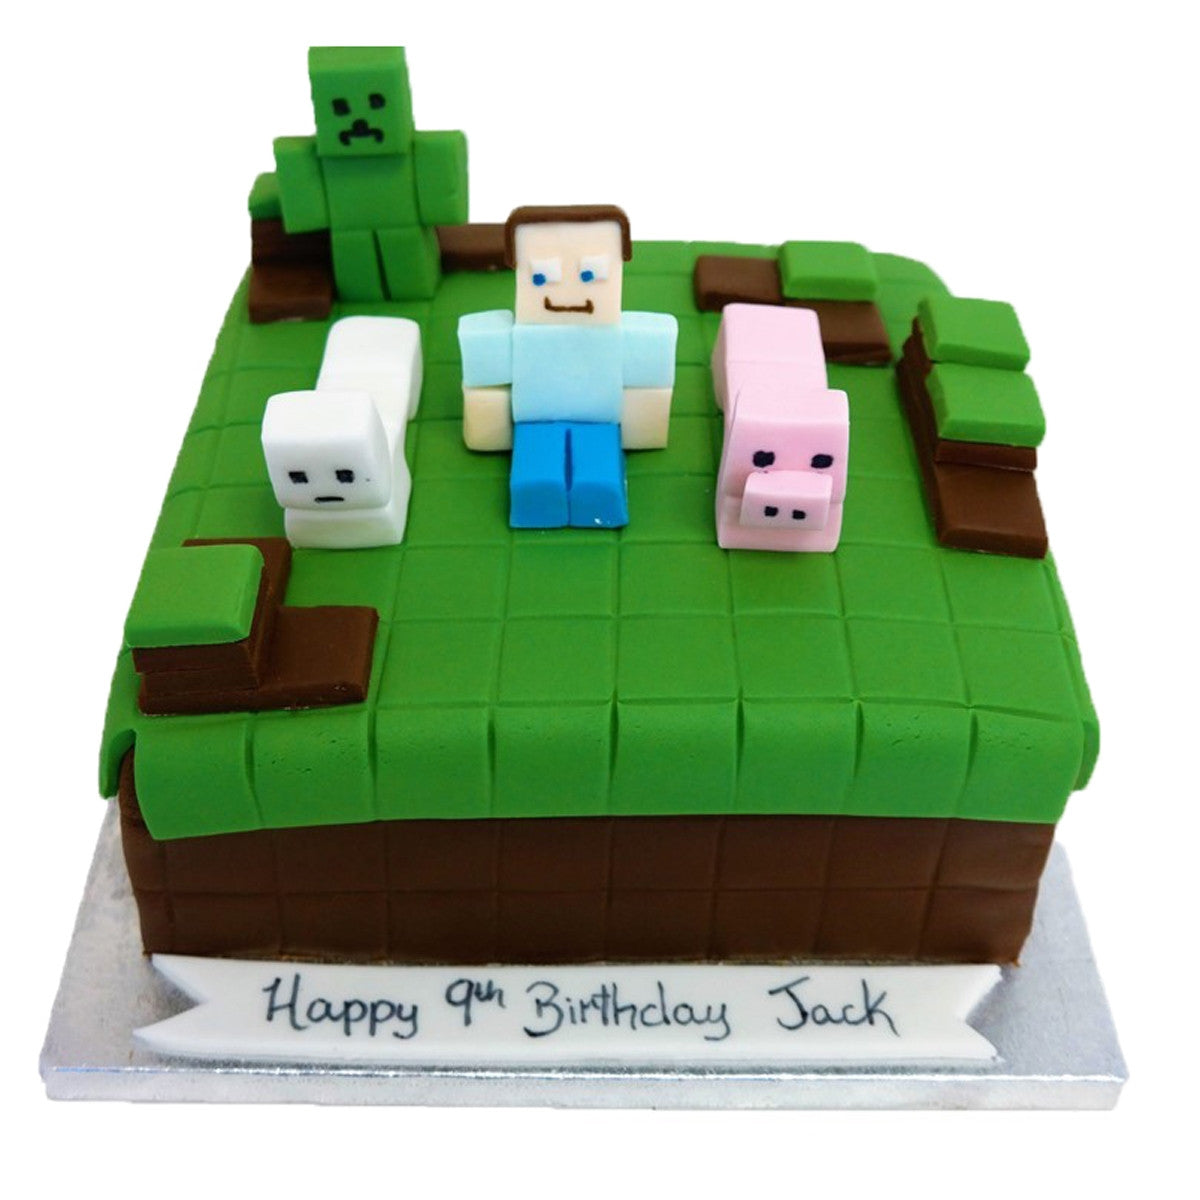 Admirable Minecraft Cake Buy Online Free Uk Delivery New Cakes Funny Birthday Cards Online Fluifree Goldxyz